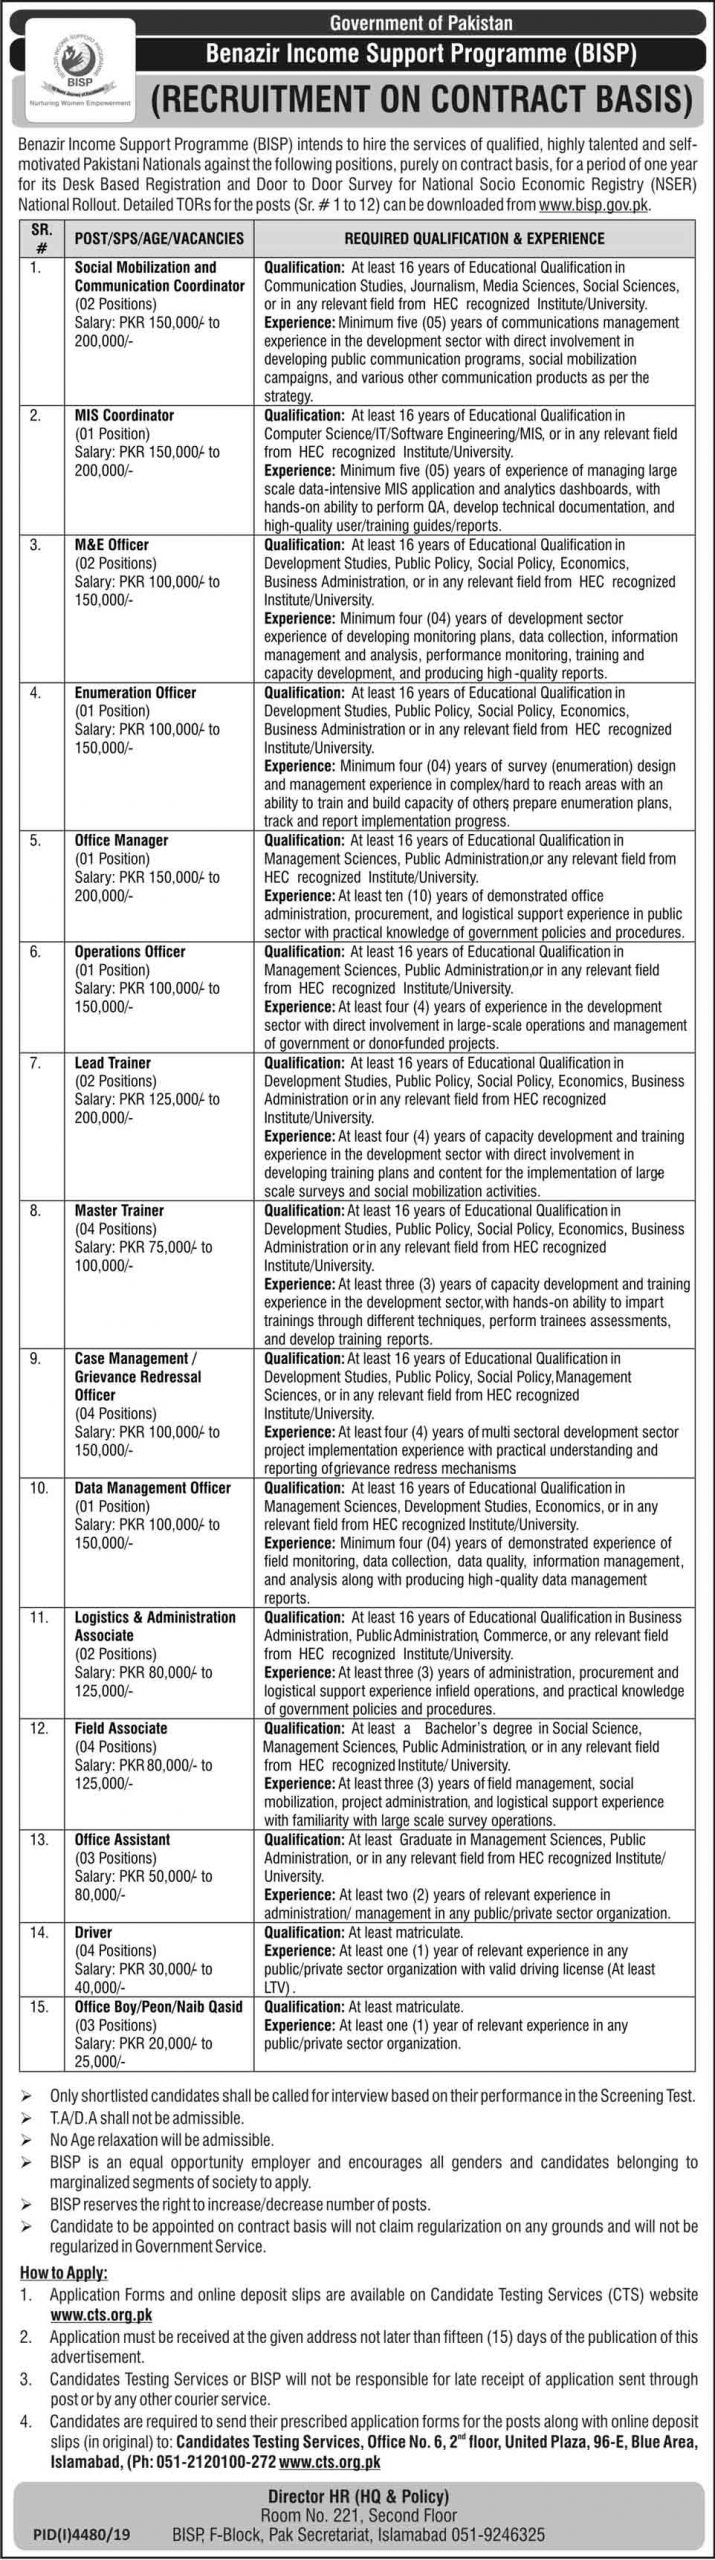 BISP Benazir Income Support Programme Jobs CTS Test Results